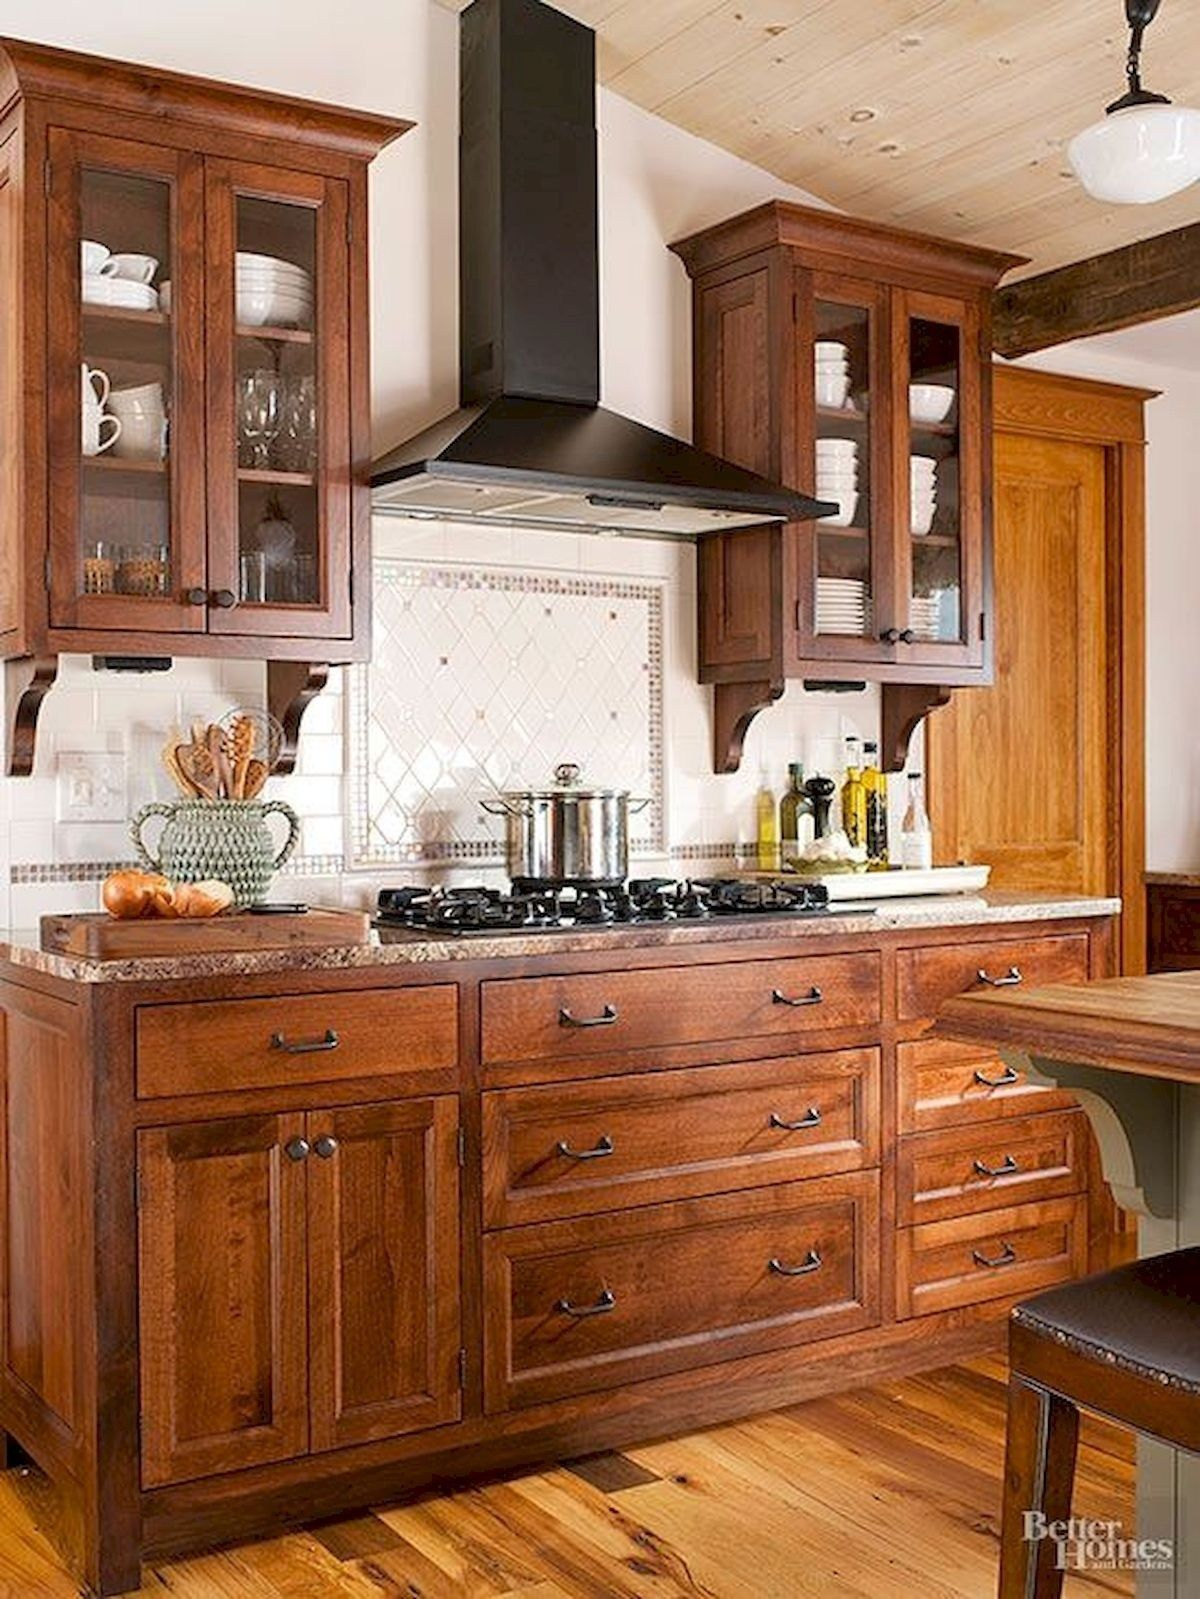 40 Awesome Farmhouse Kitchen Cabinets Design Ideas And Decorations